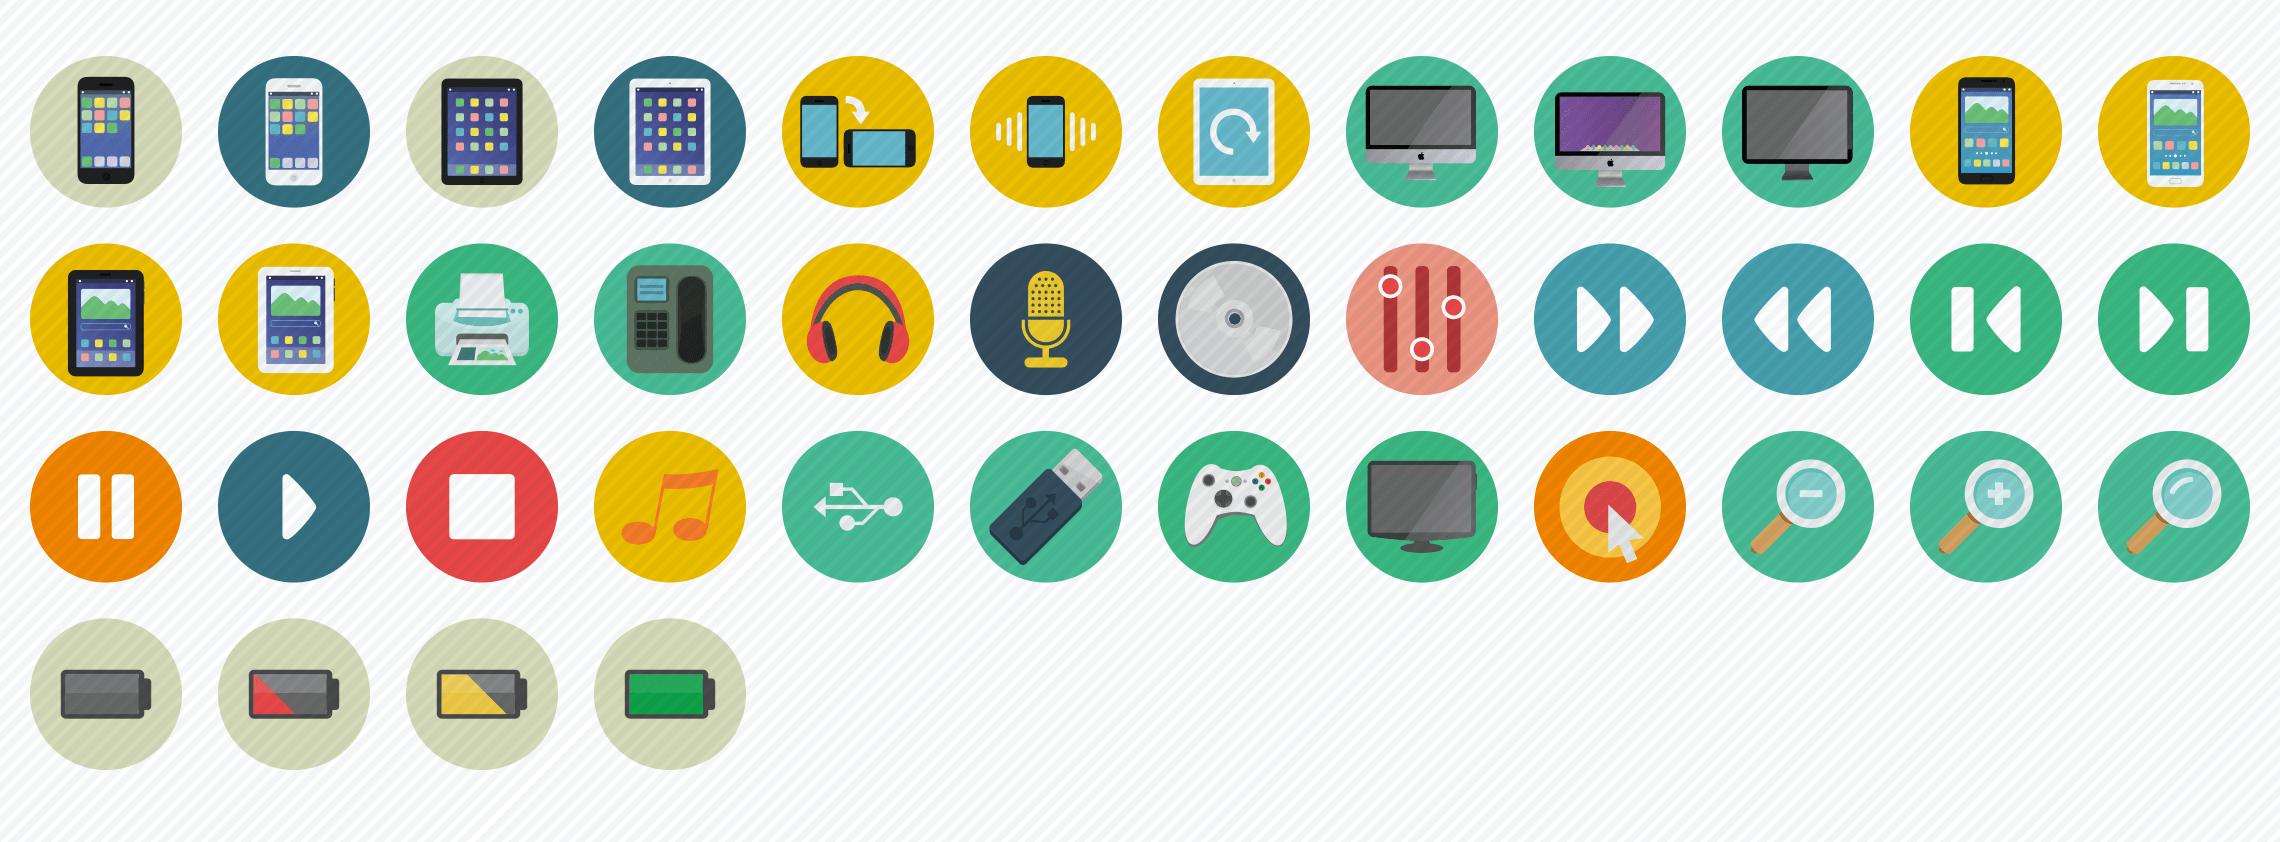 multimedia-flat-icons-set